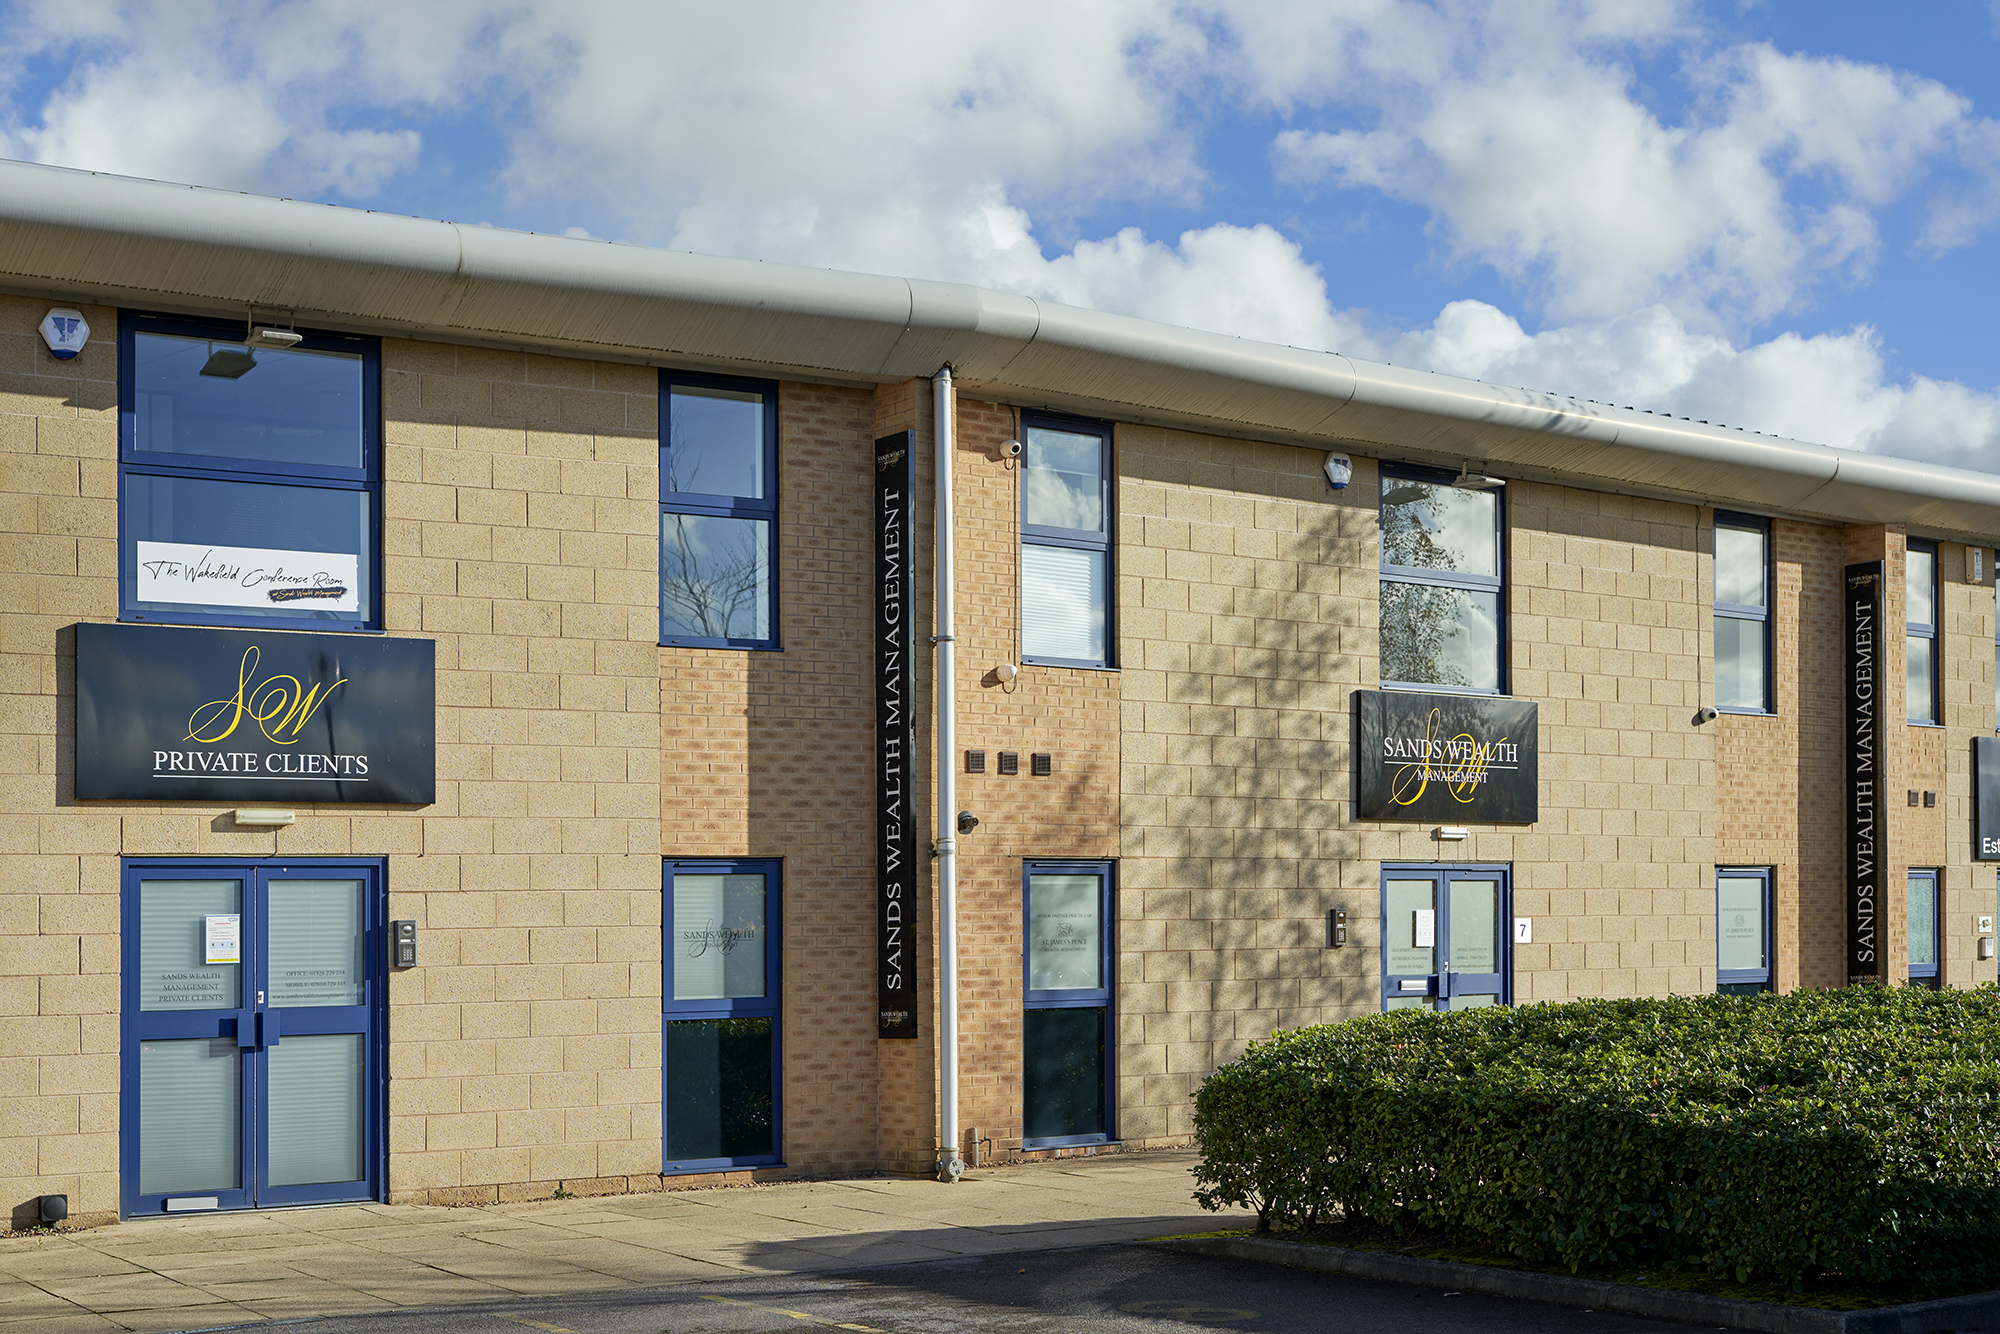 The Wakefield Conference Room is part of Sands Wealth Management, located next door with its own private entrance, foyer, kitchen and toilets.